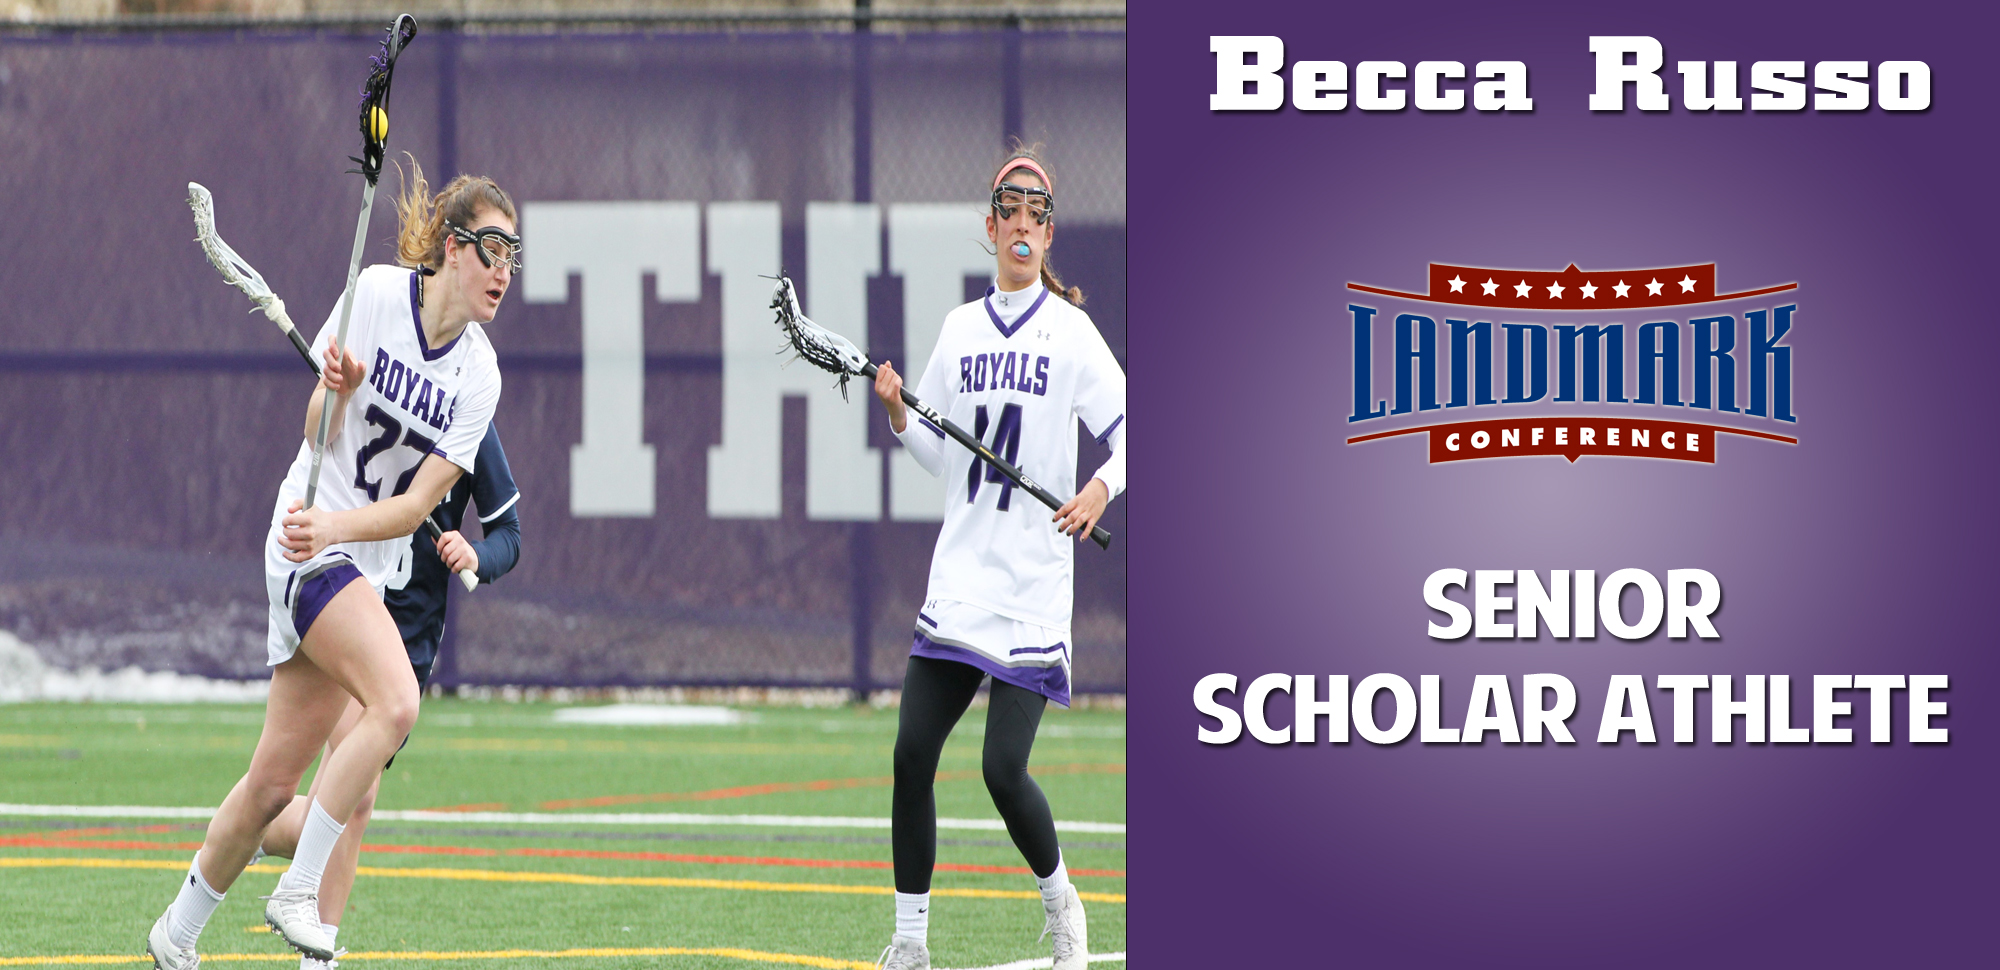 Becca Russo became the second player in women's lacrosse program history to be named Landmark Conference Senior Scholar Athlete on Tuesday.